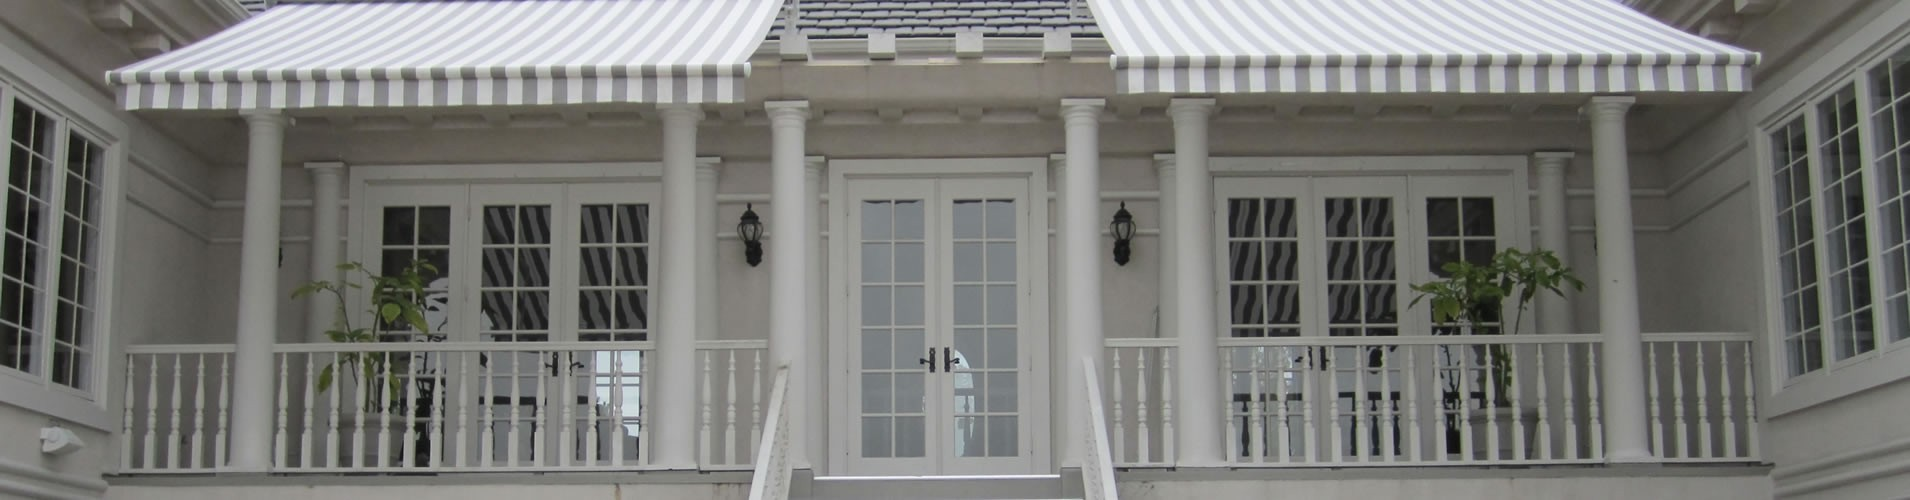 Dallas TX Retractable Awnings